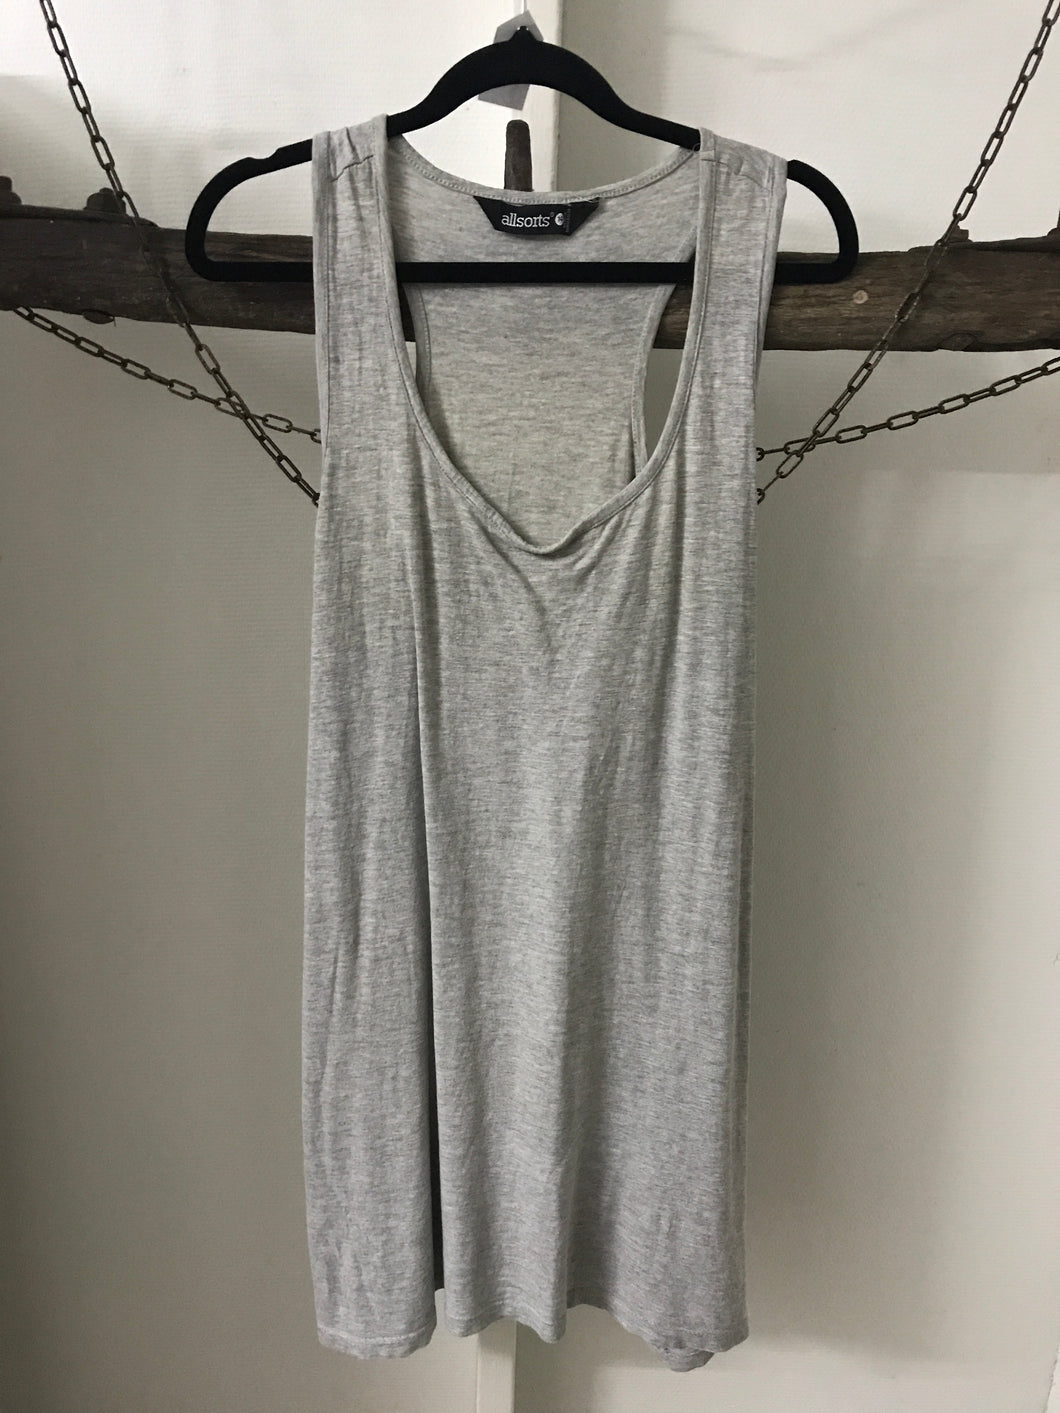 All Sorts Grey Singlet Size 14